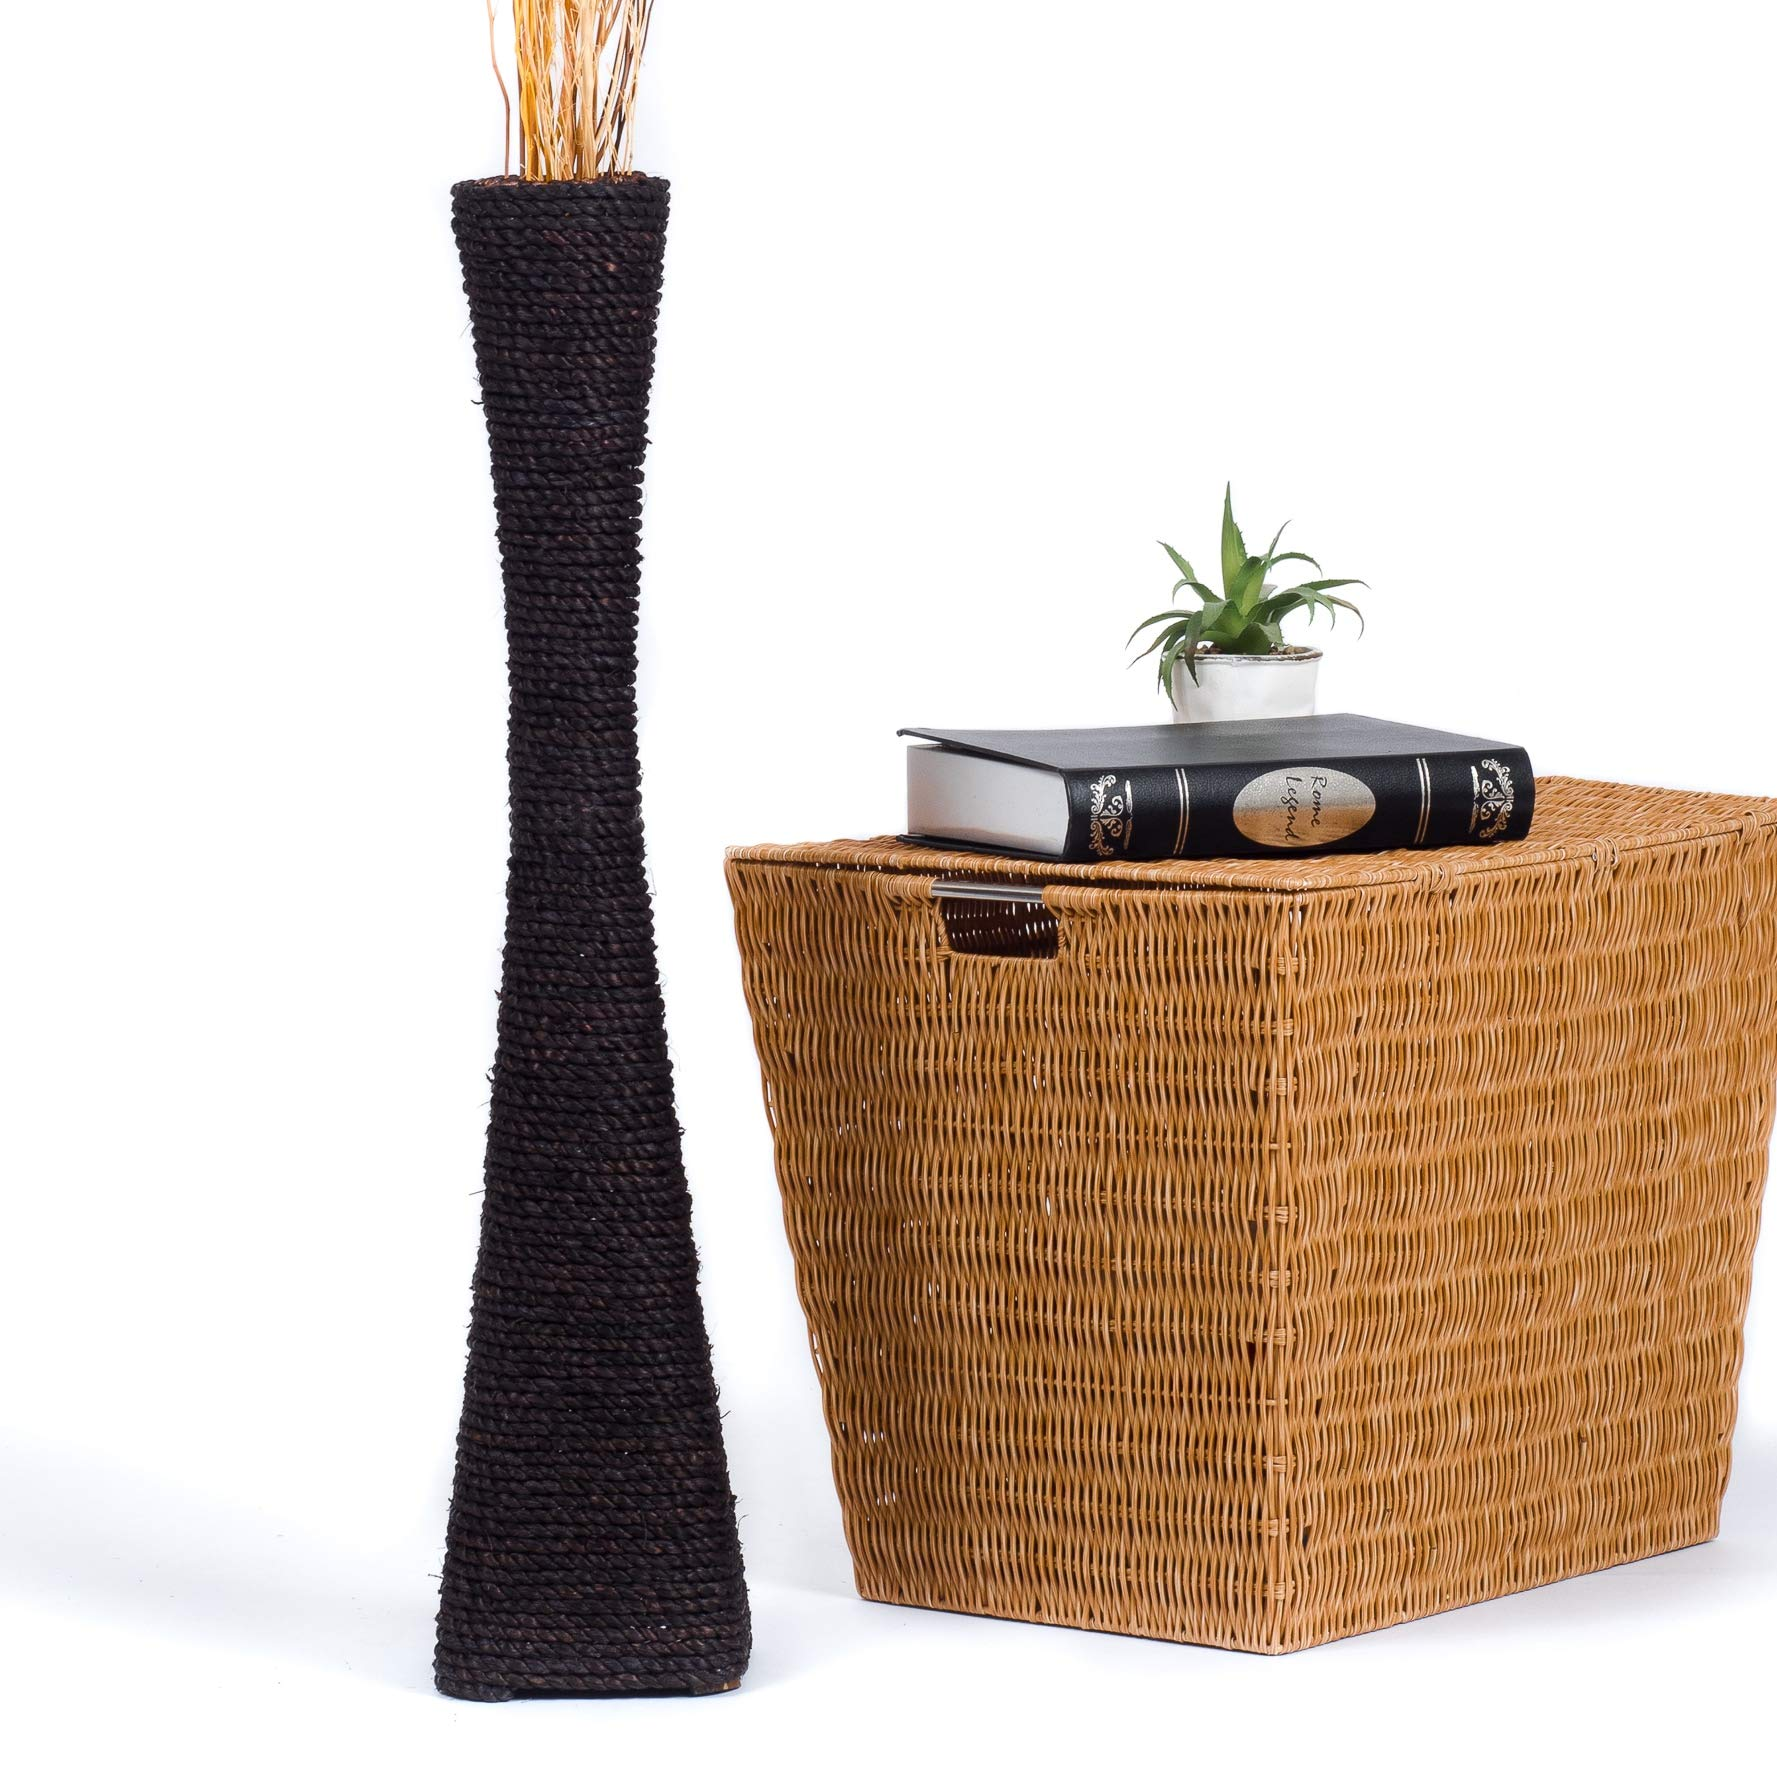 CDM product Leewadee Tall Big Floor Standing Vase for Home Decor 30 inches, Water Hyacinth, Black big image